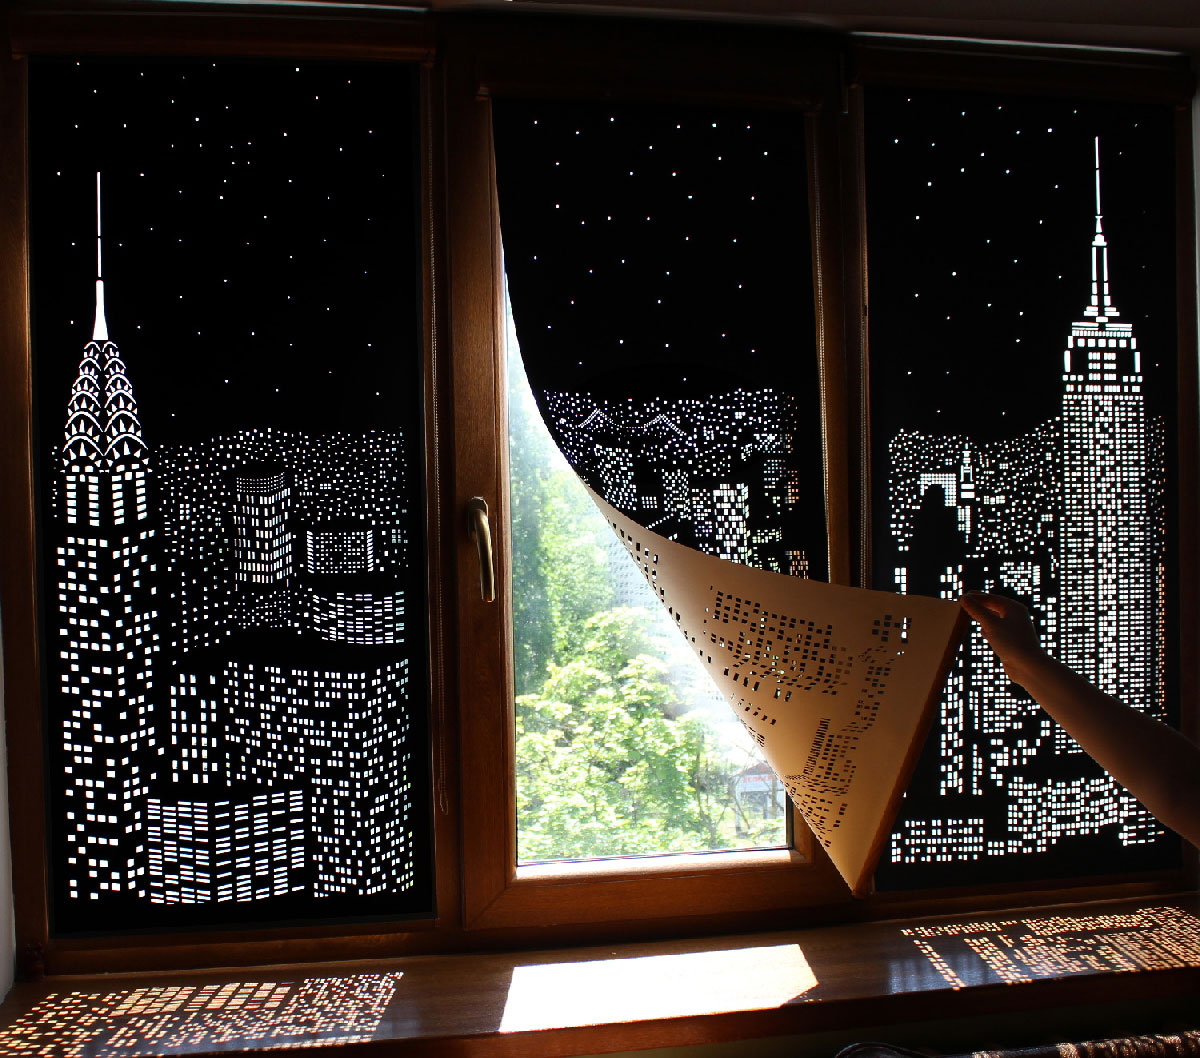 a ukrainian blind company called holeroll shared this fun set of concept blinds that feature iconic cityscapes cut into blackout curtains